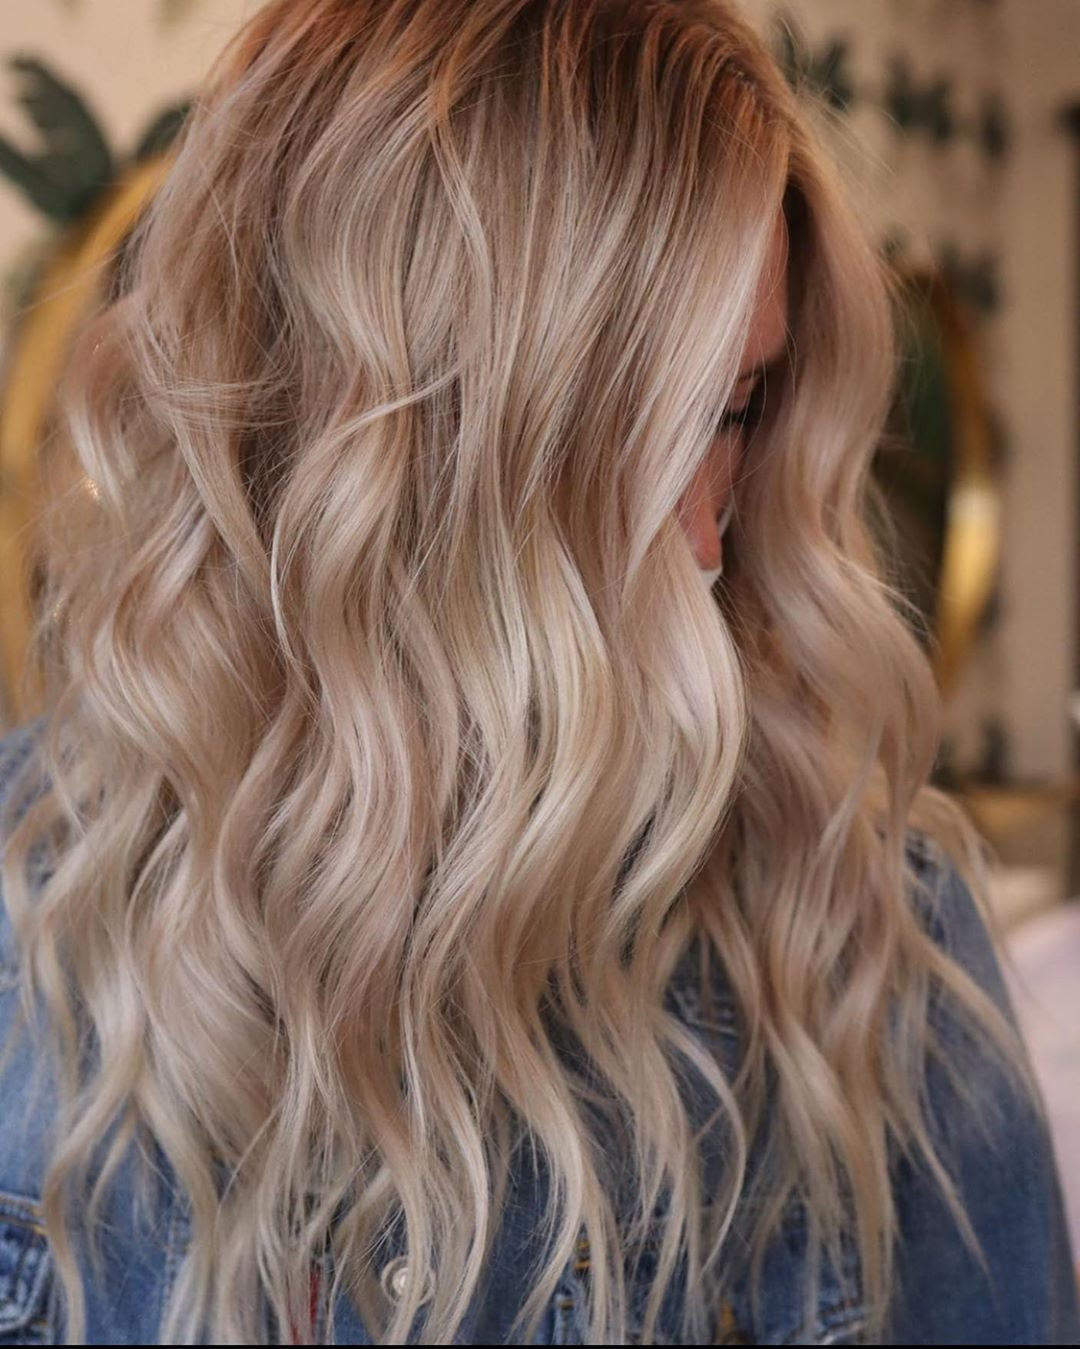 10 Female Long Hairstyle with Color Trend - Women Long Hair Color 2021